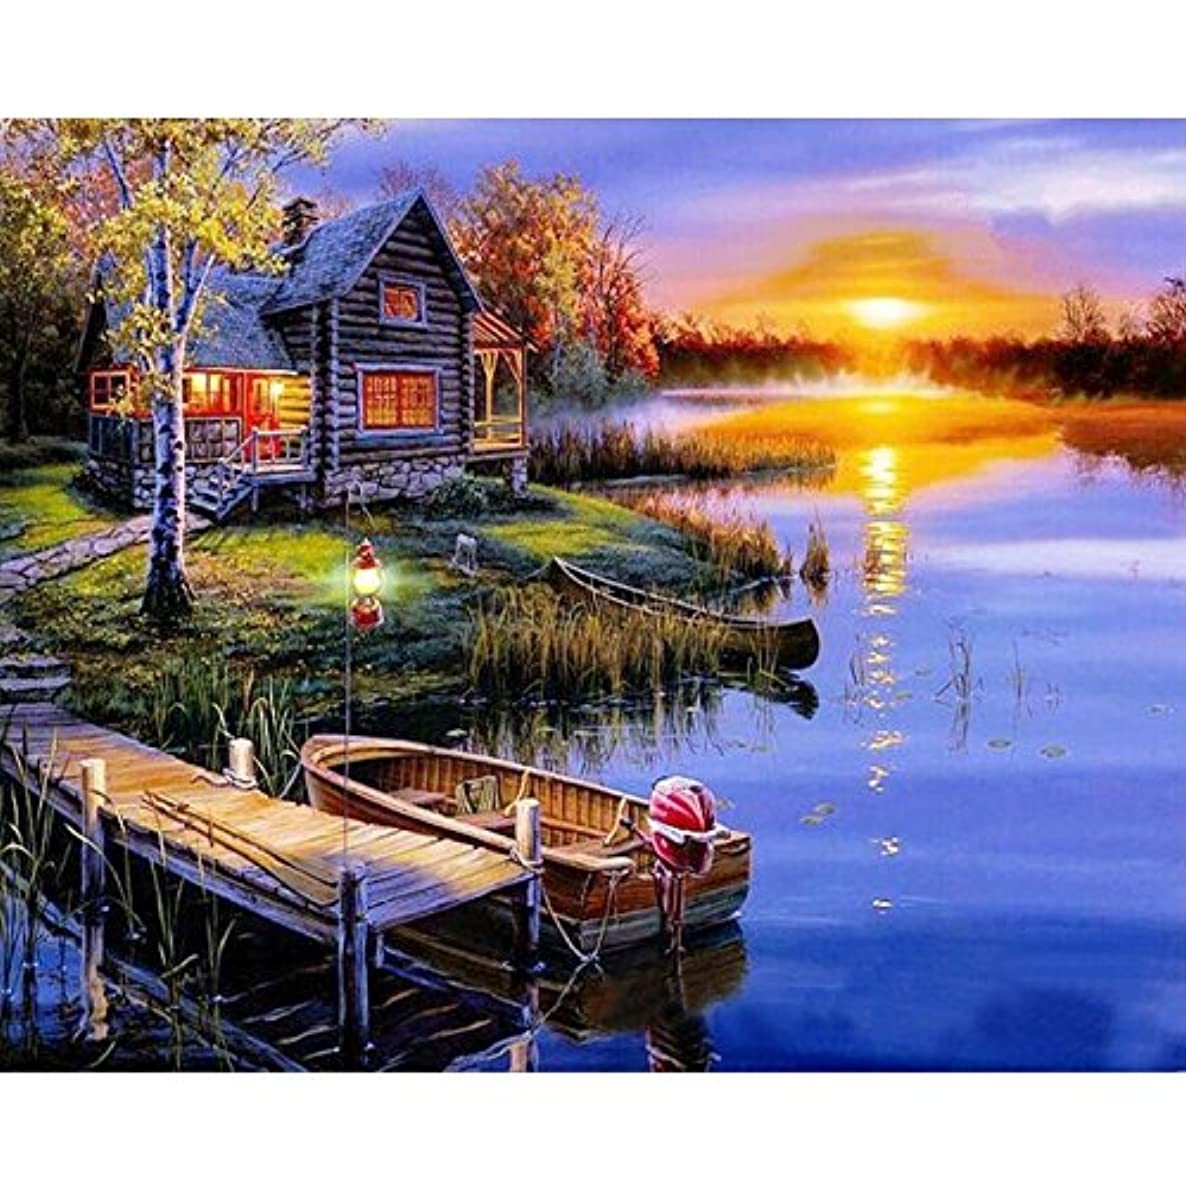 Paint by Numbers for Adults Acrylic Oil Painting by Numbers Kit for Kids Beginner by TOCARE, Romantic Countryside in Sunset Pattern 16x20inch